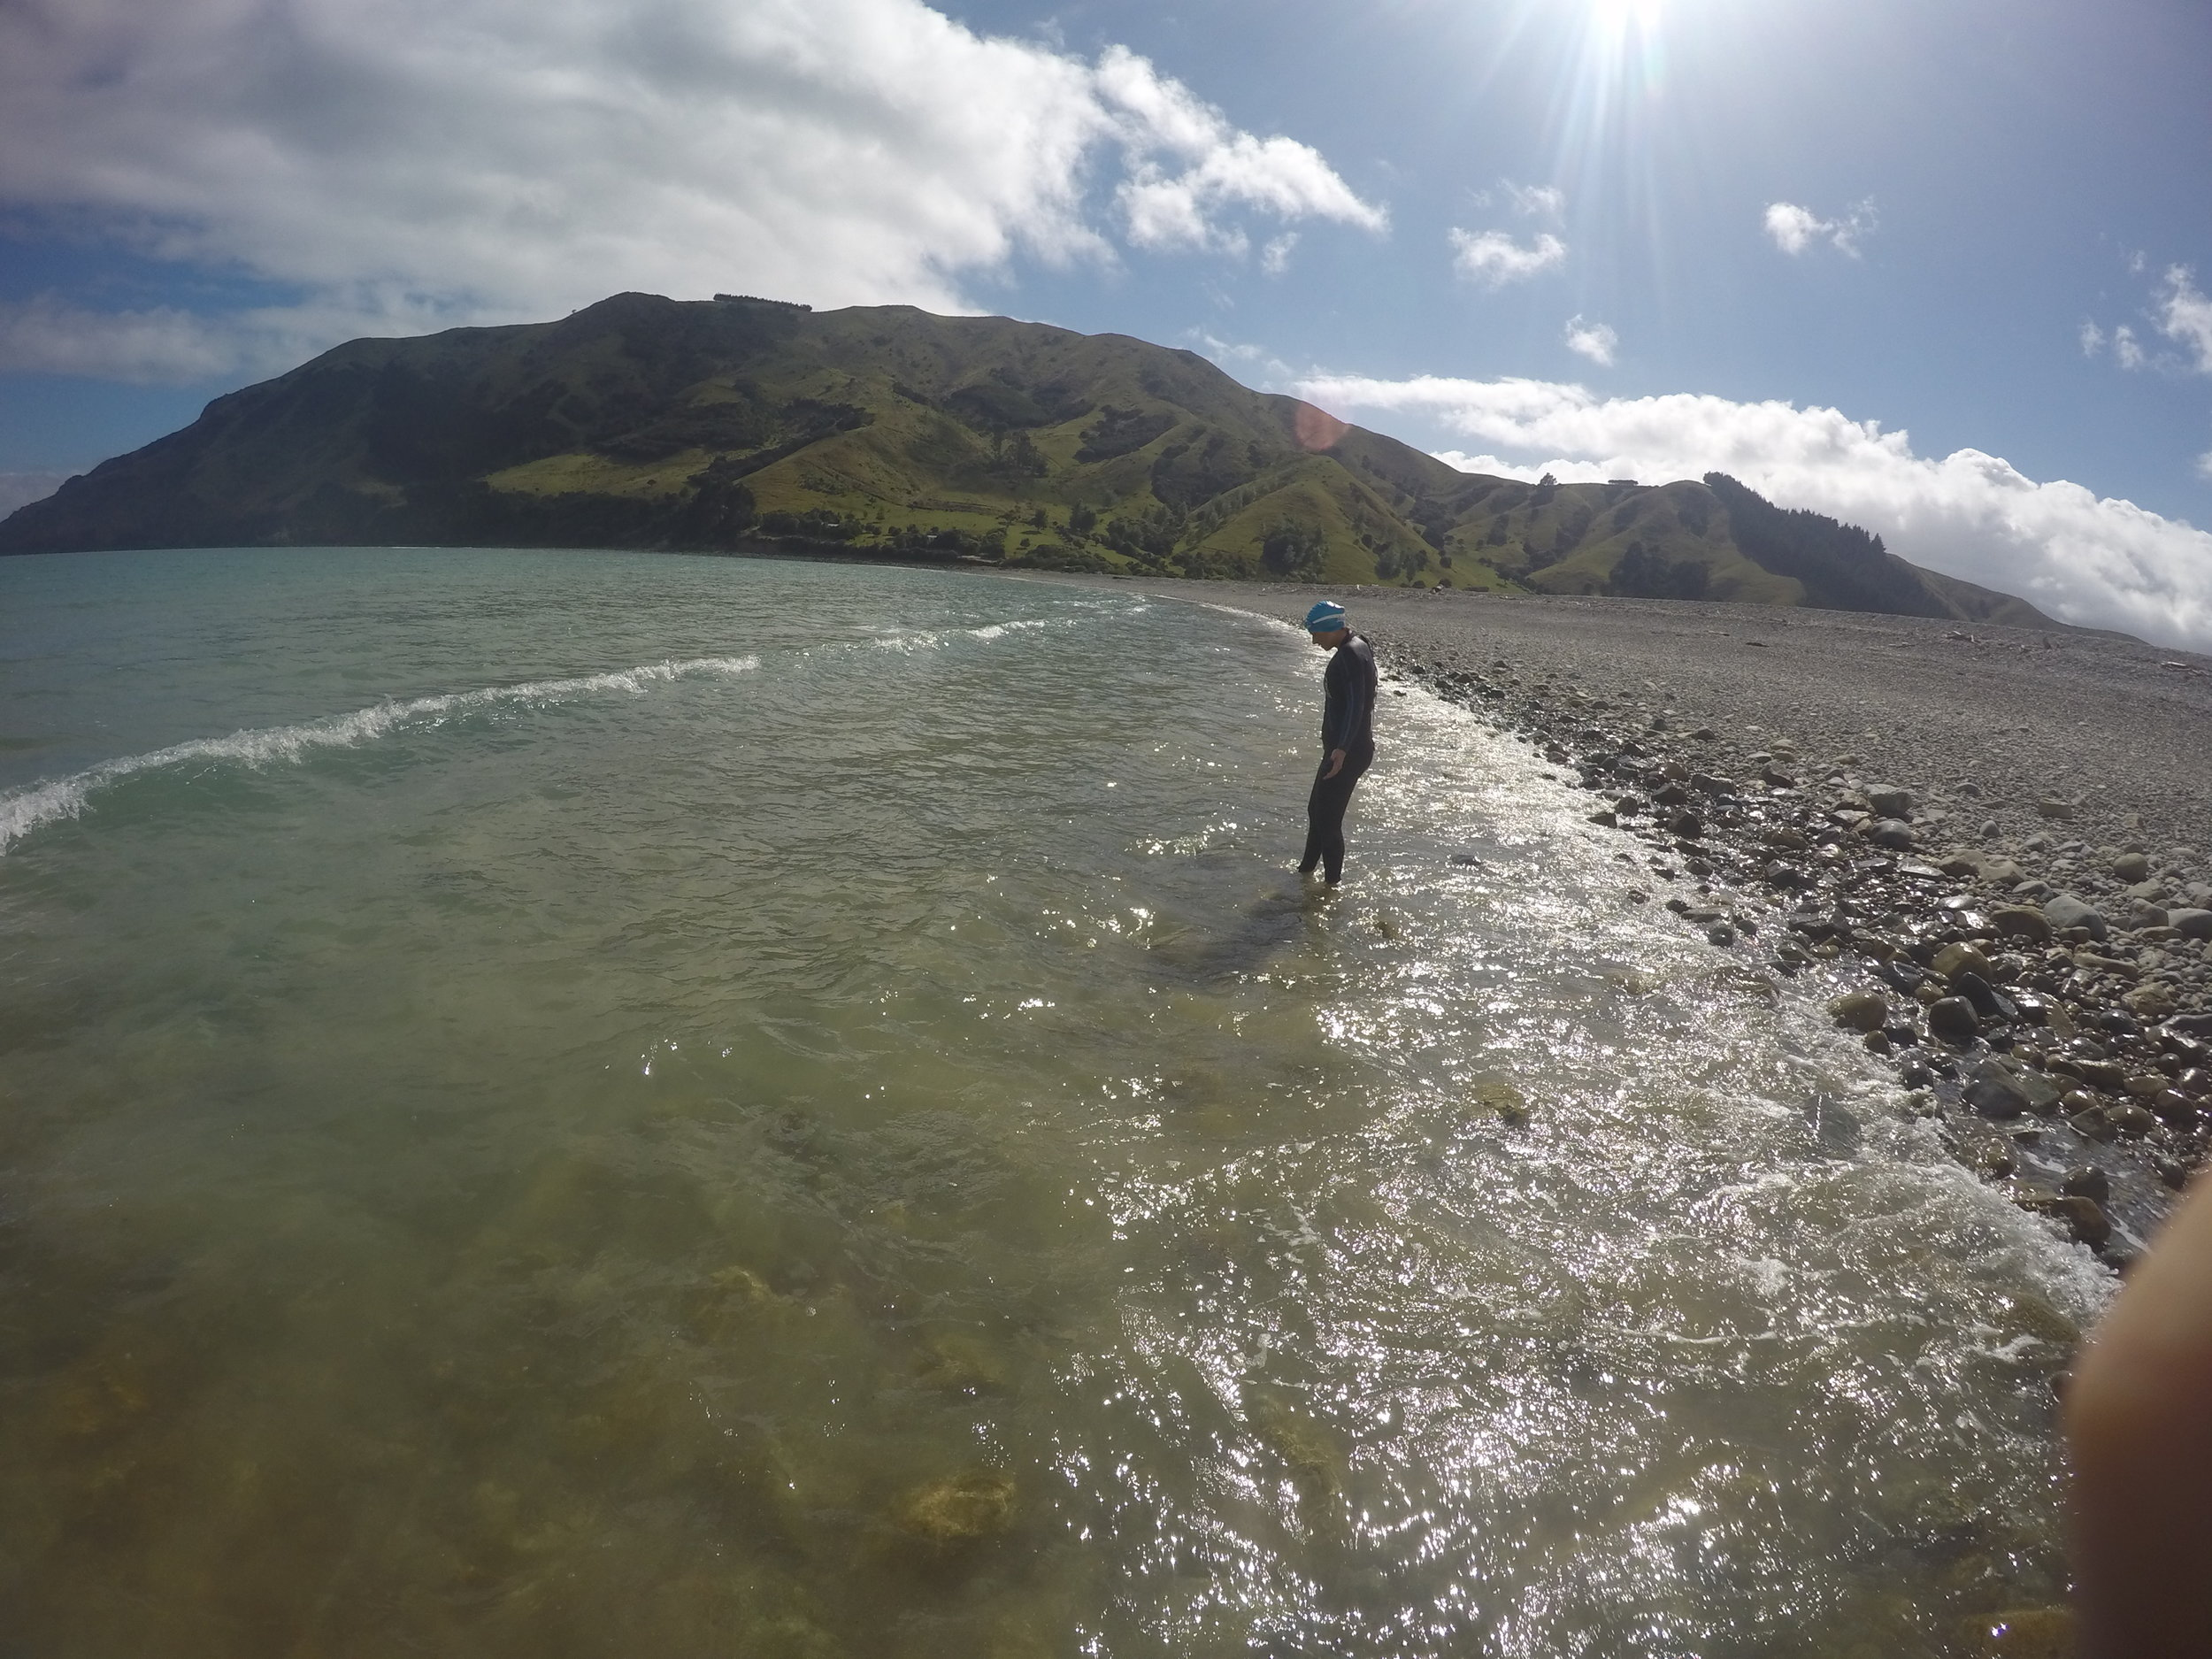 It's hard to kick those openwater jitters. Pictured here: Cable Bay, New Zealand